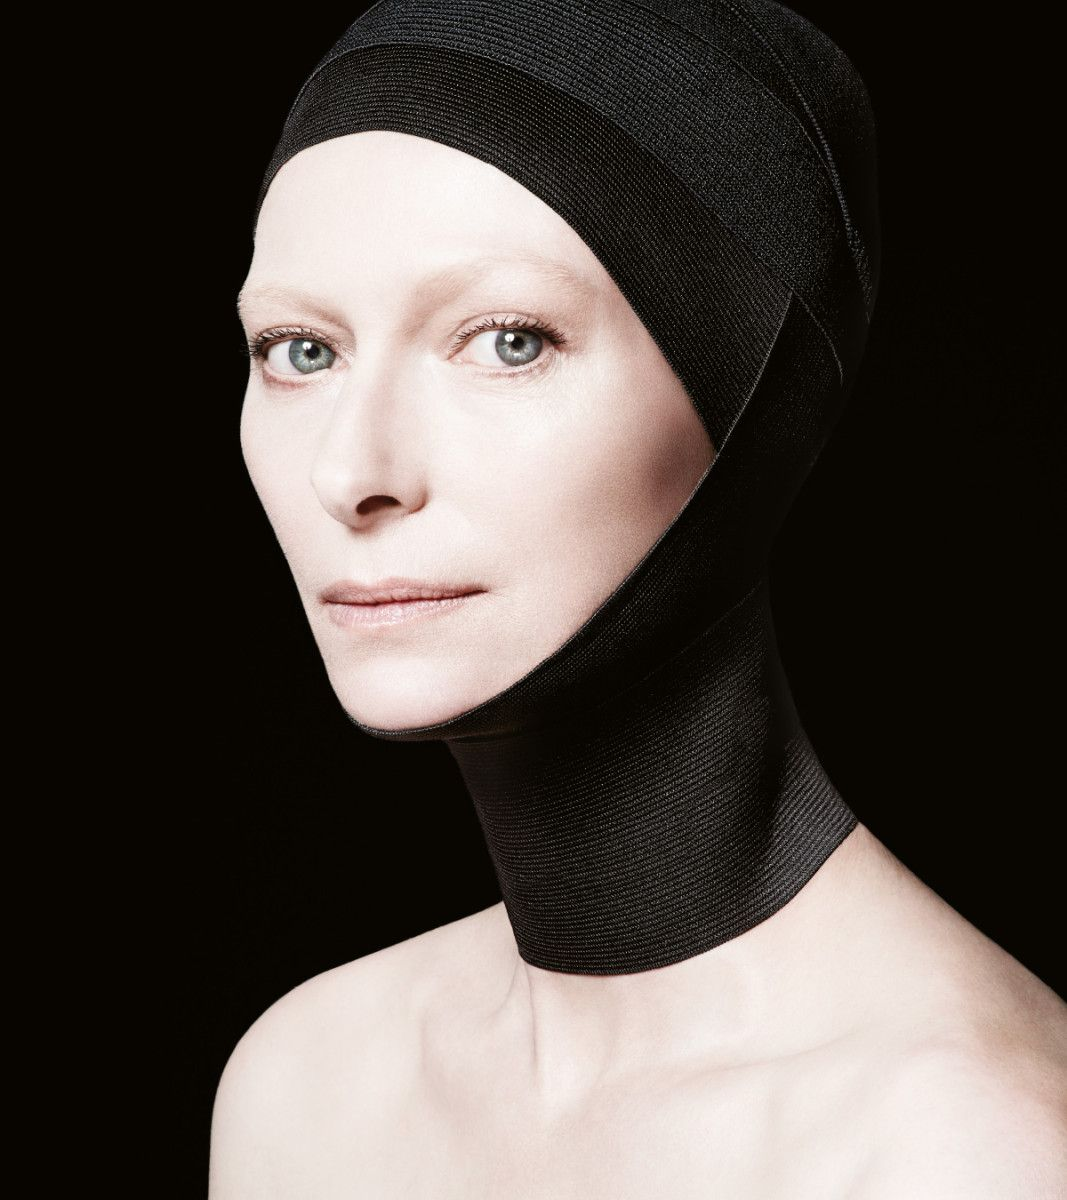 NARS All day Luminous Weightless Foundation. Haven't tried it. Really? One drop? If Tilda uses it, maybe I should.